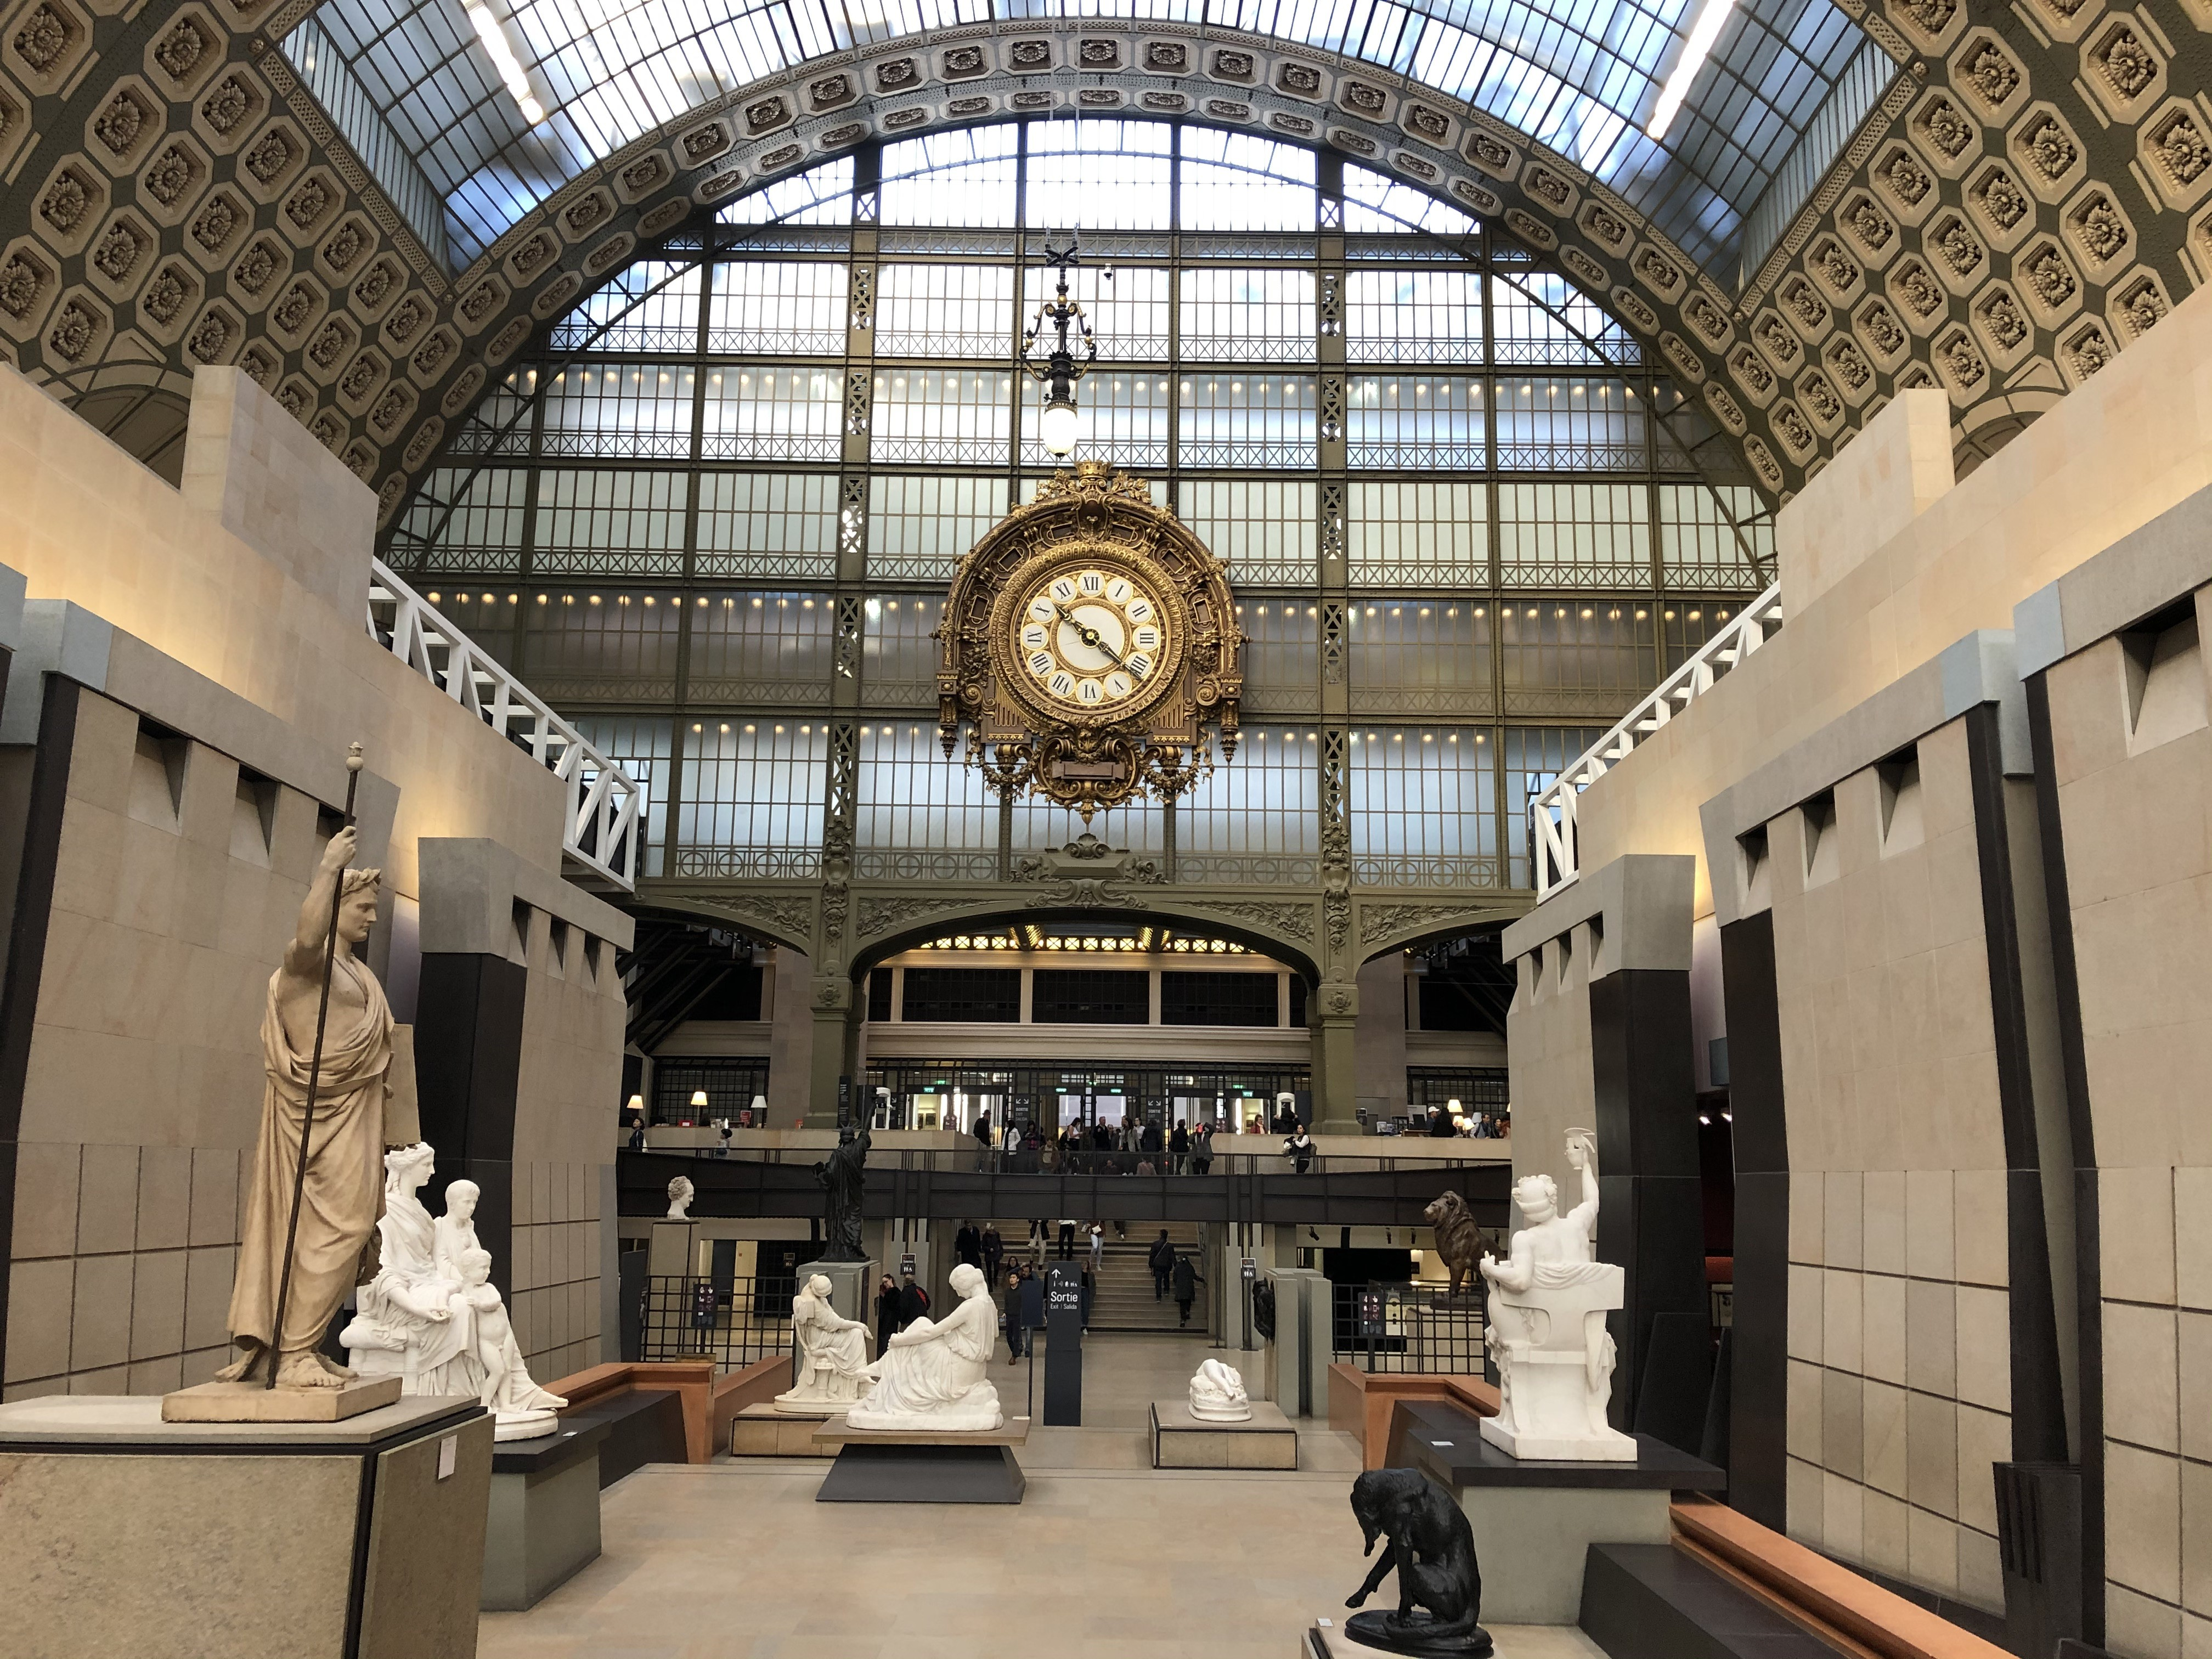 A large space with a glass wall and a clock on the wall with sculptures in the foreground.